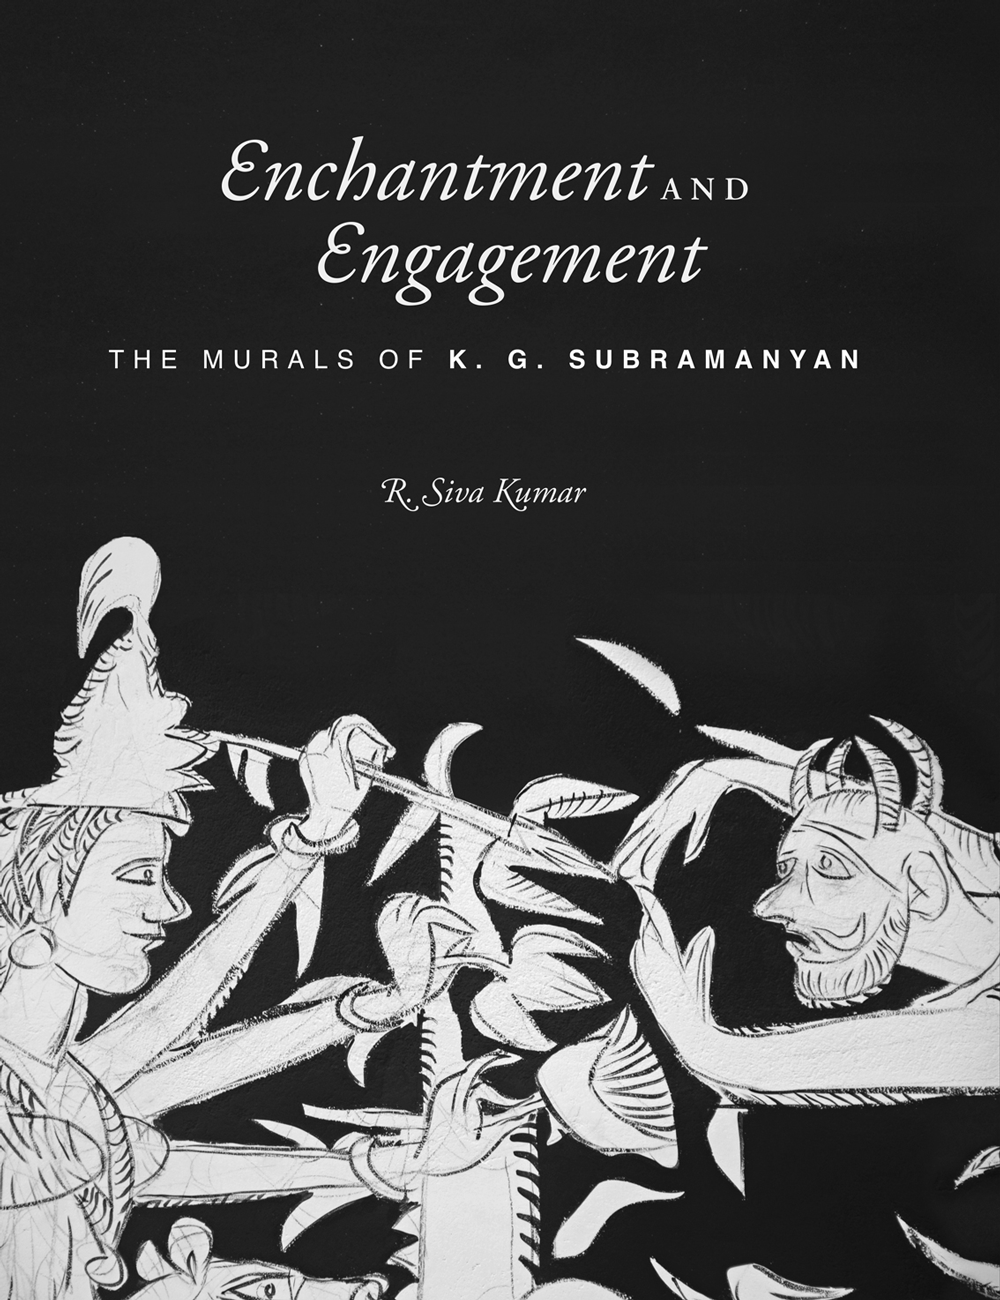 Enchantment and Engagement